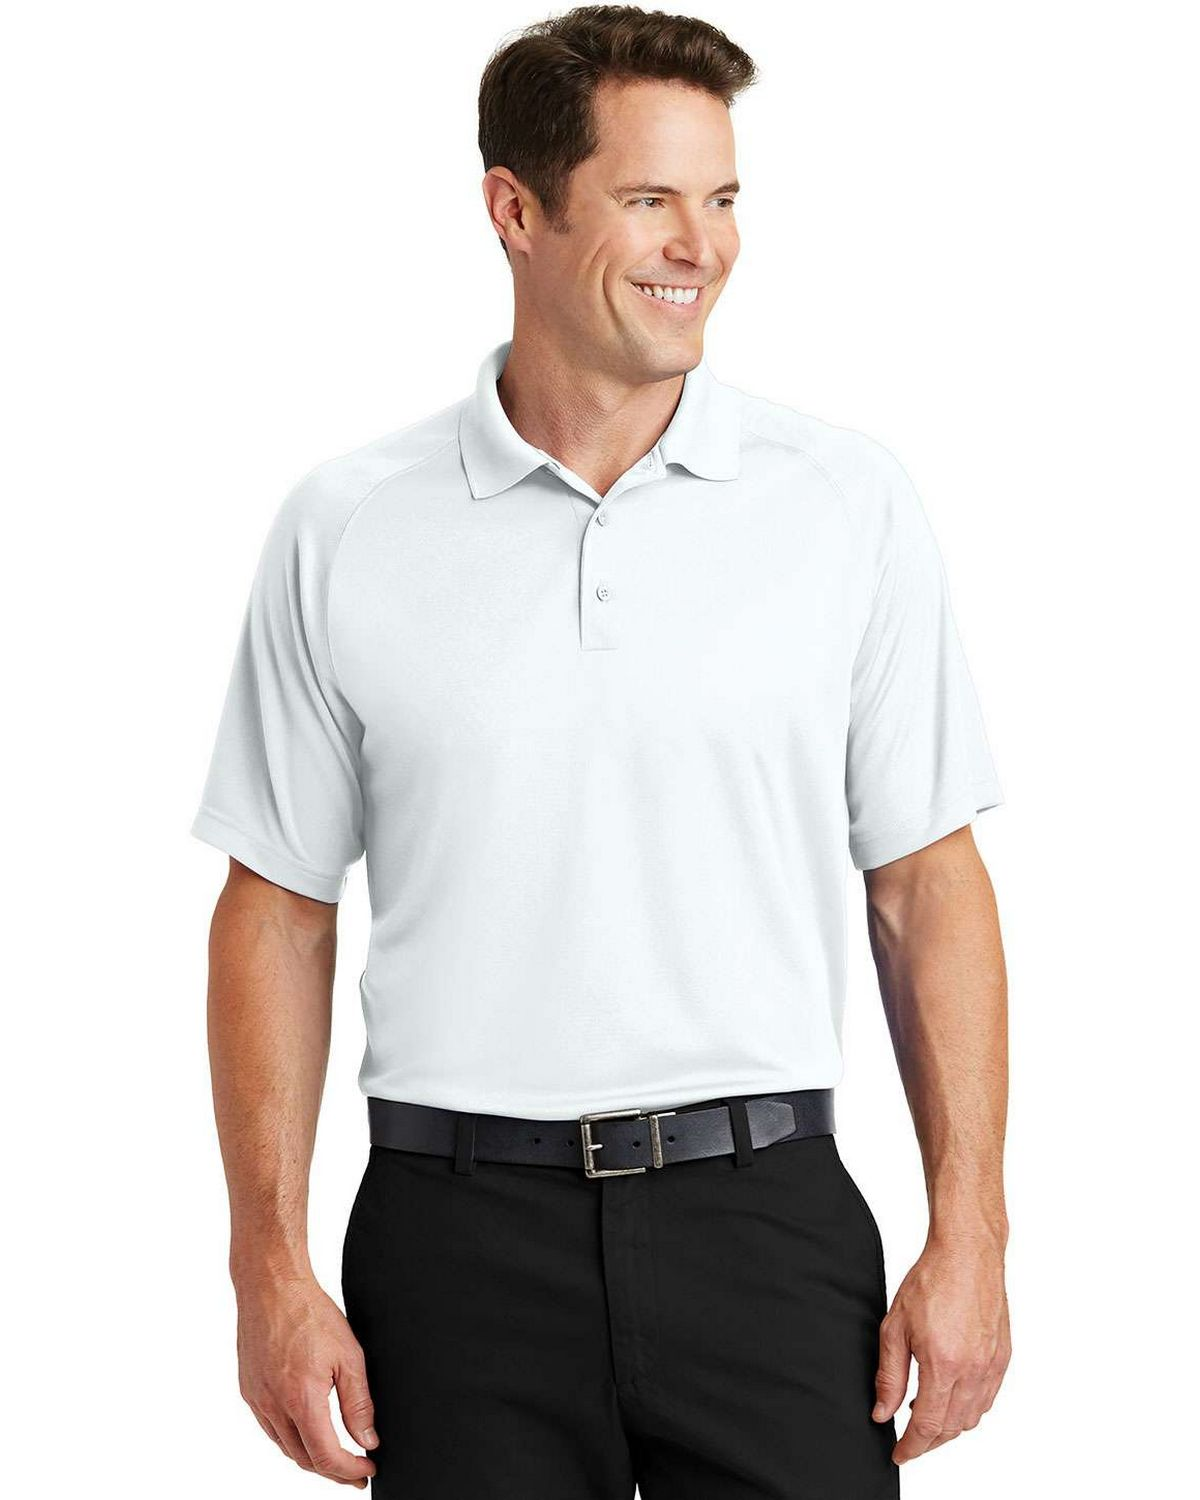 723e867f317 Buy Sport-Tek T475 Dry Zone Raglan Polo by Port Authority